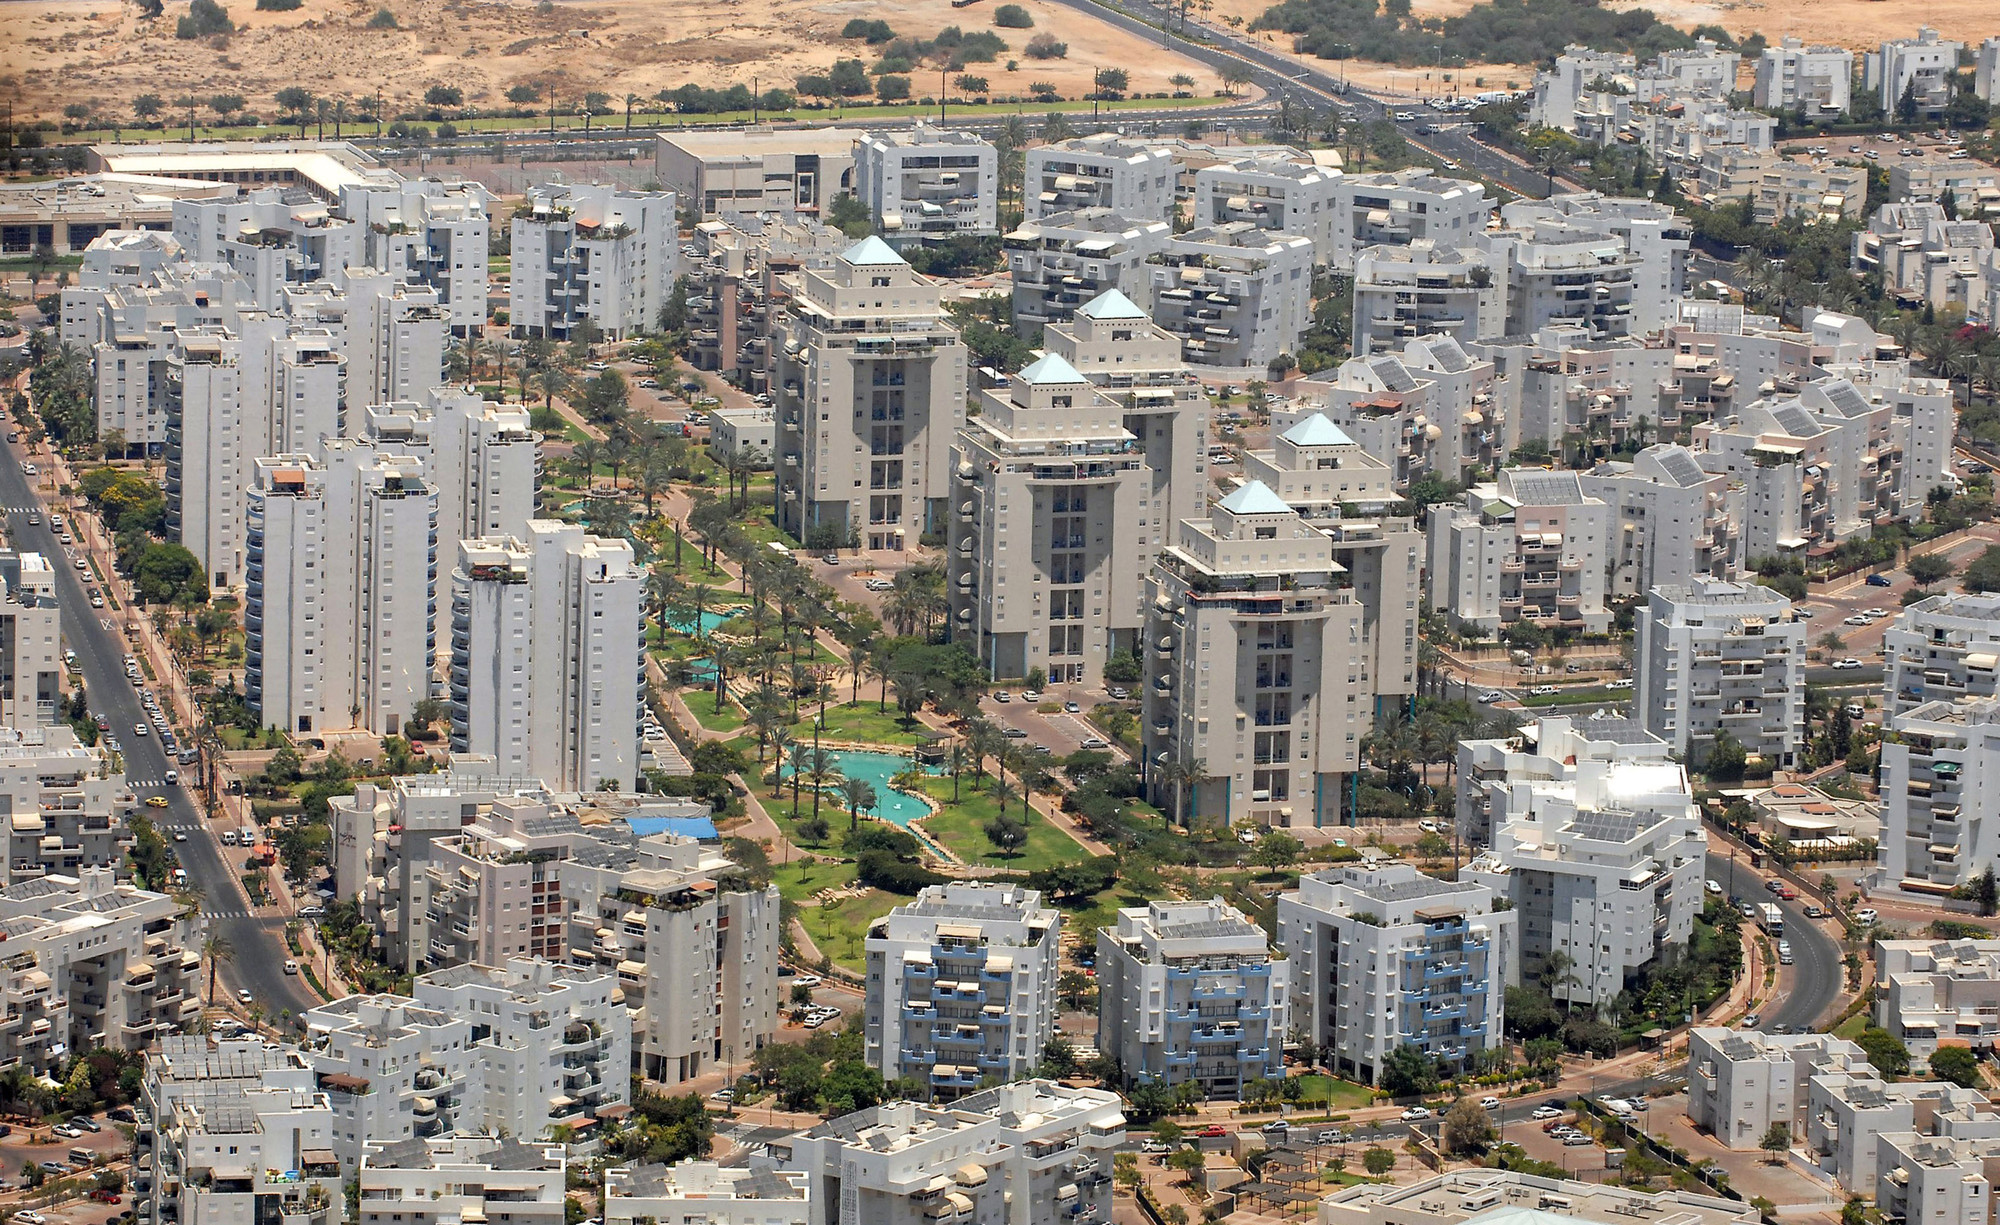 Aerial view of Rishon LeZion. Image by Moshe Millner / GPO